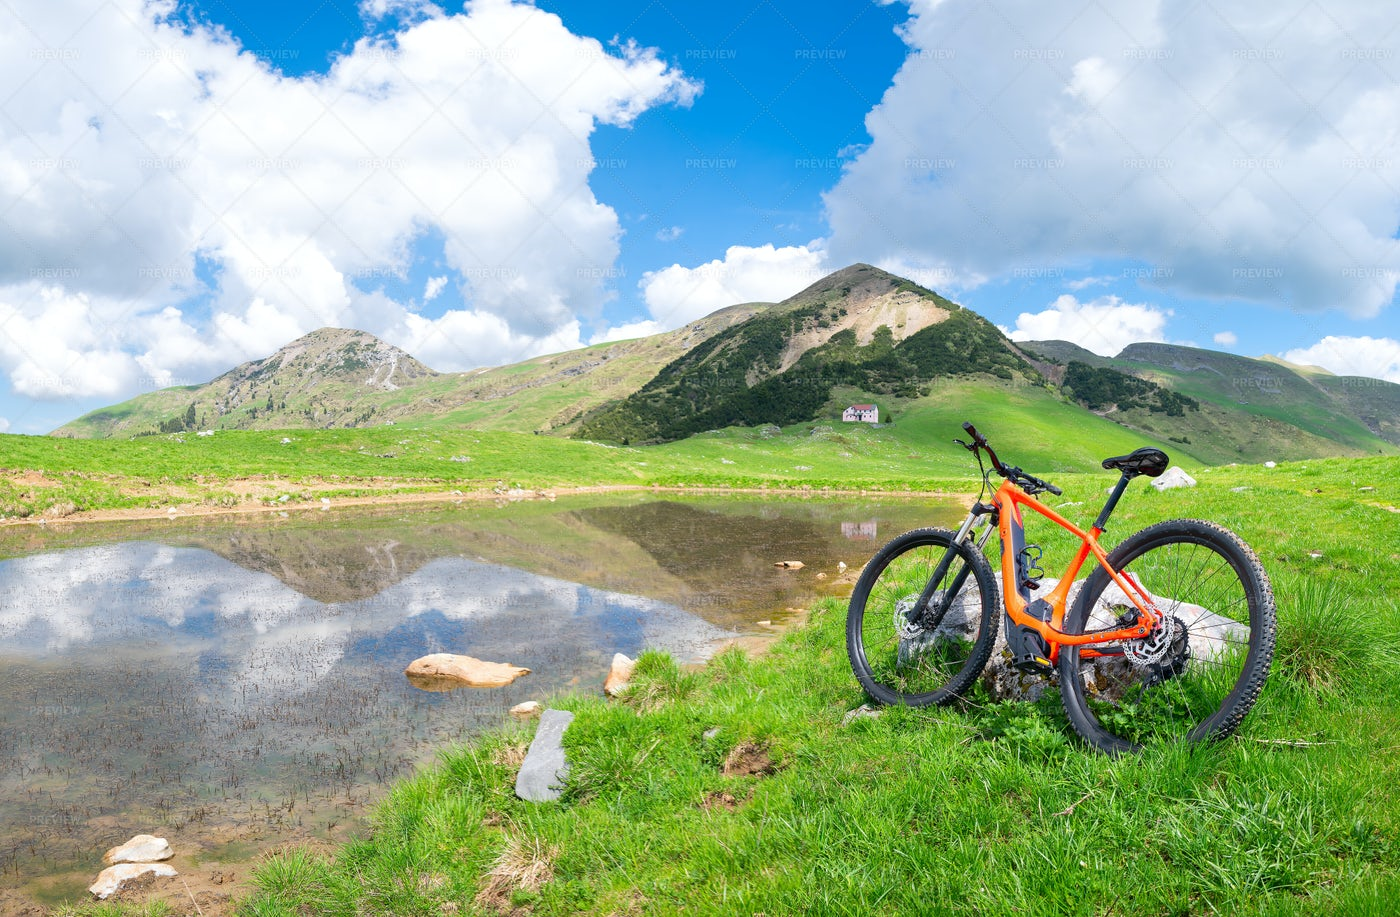 Bike Near An Alpine Lake: Stock Photos